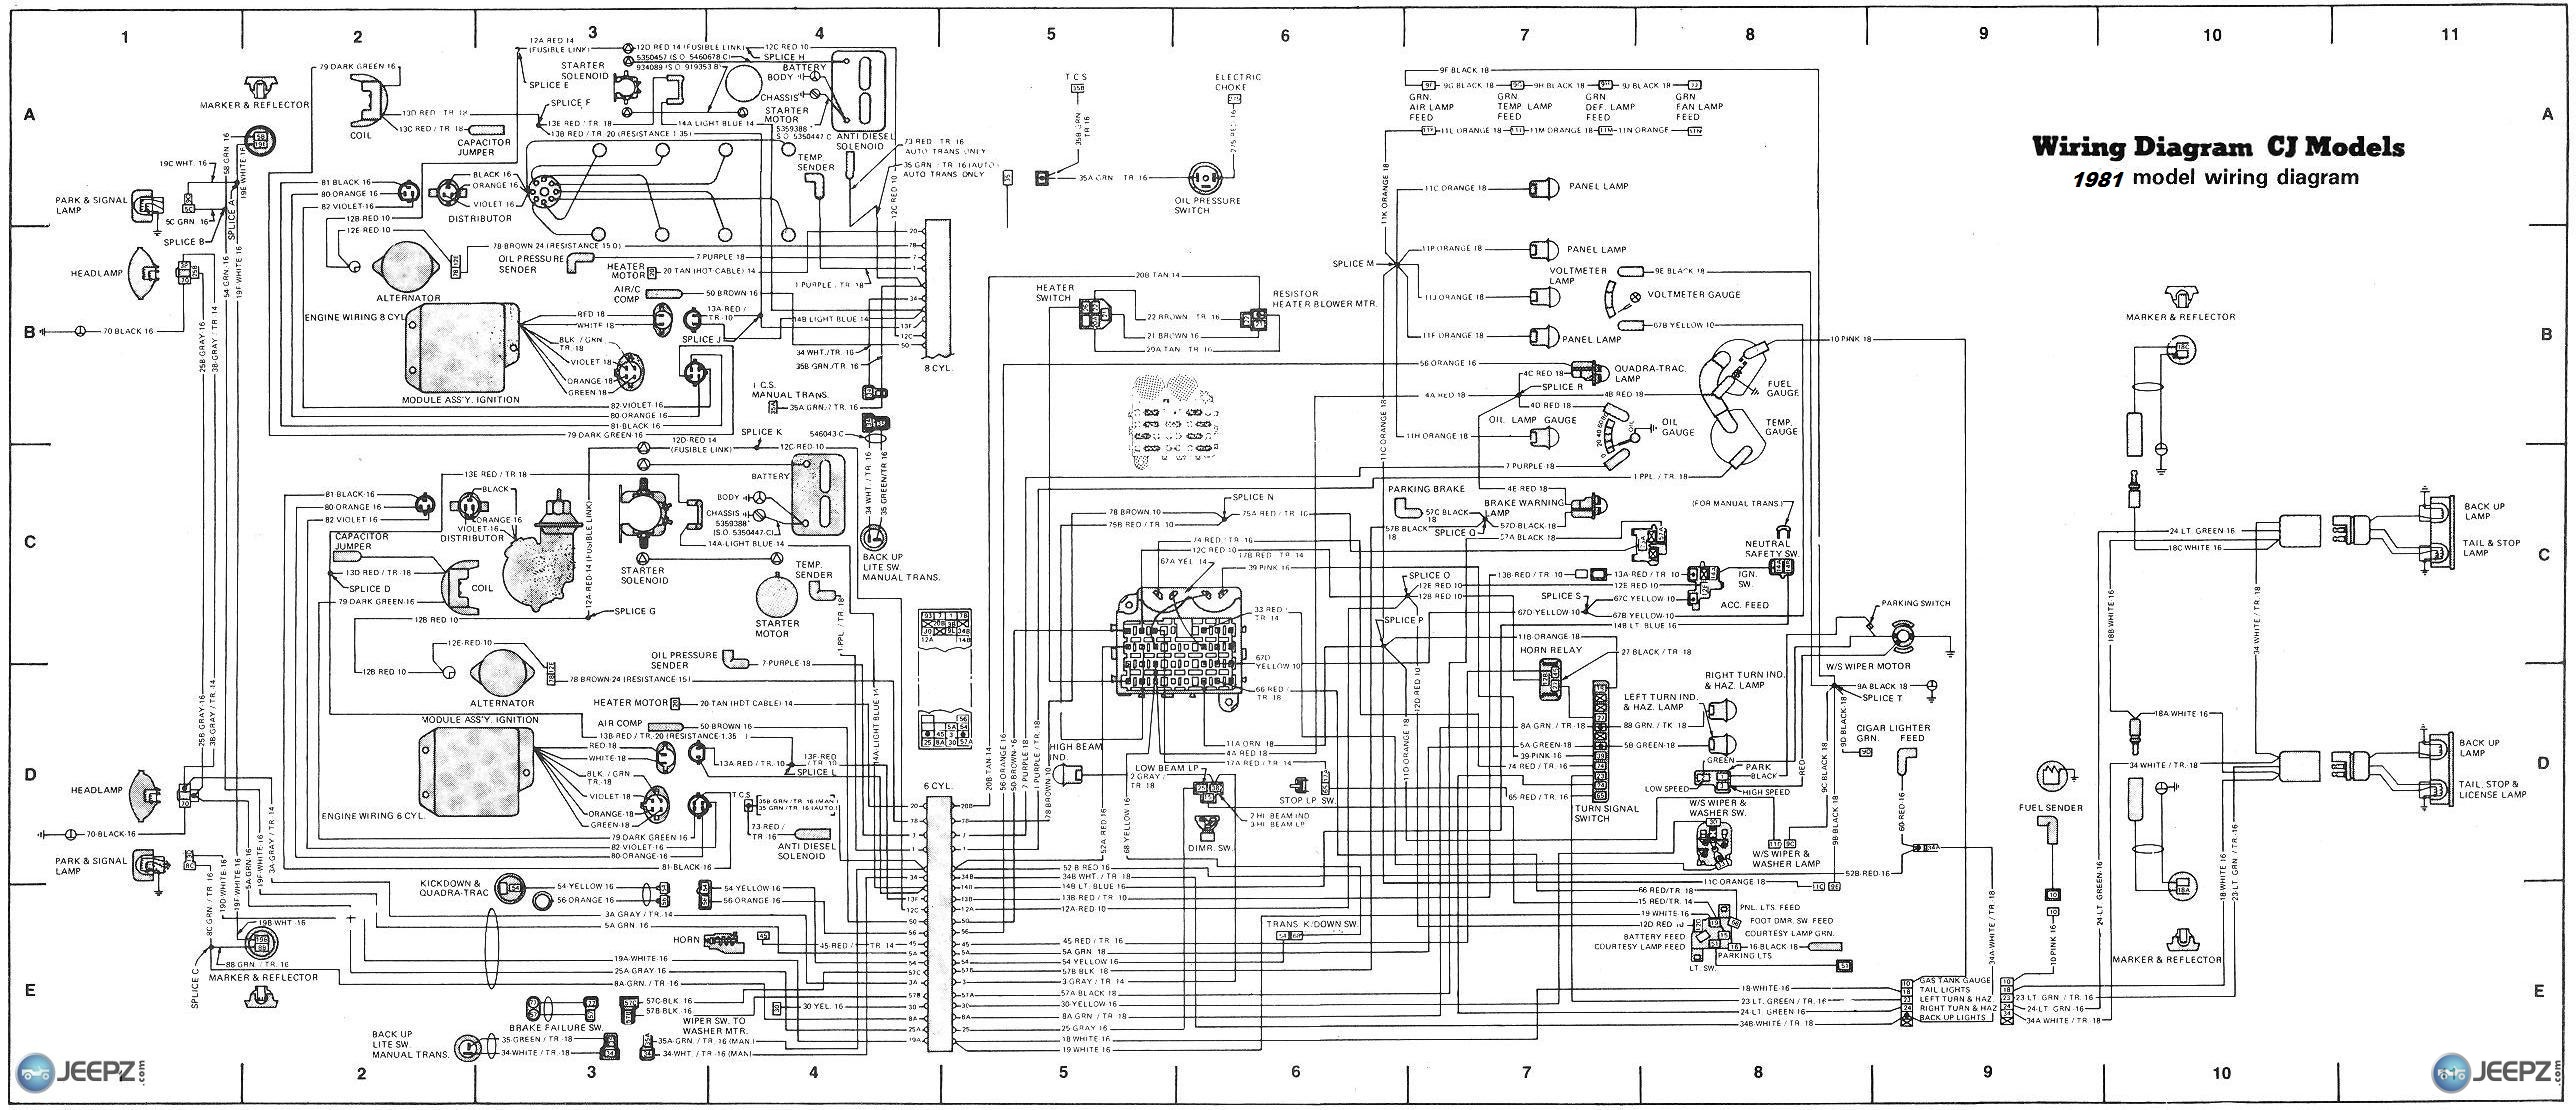 medium resolution of  7993d1301845049 cj 7 wire diagram cj wiring diagram 1981 resized665 2c2876ssld1 opel corsa b